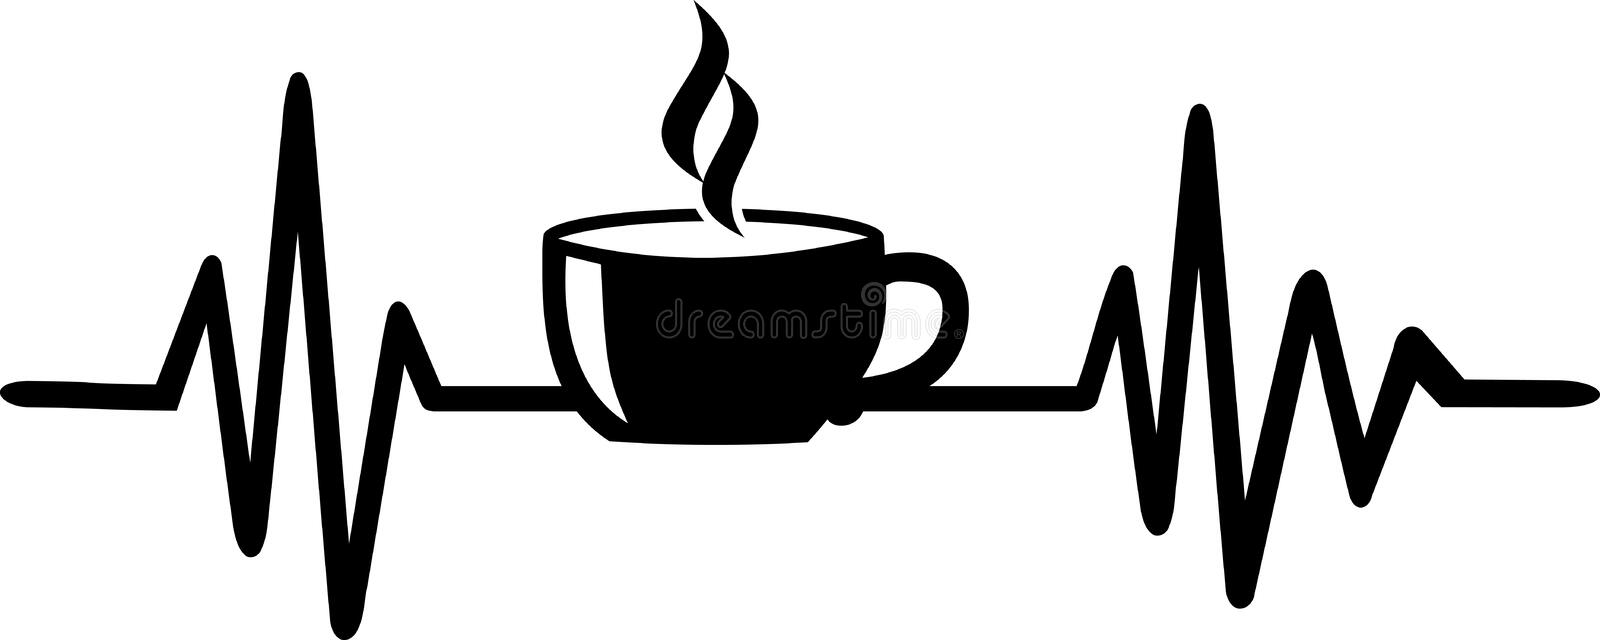 Coffee heartbeat line with coffee cup. Heartbeat pulse line with coffee cup black stock illustration